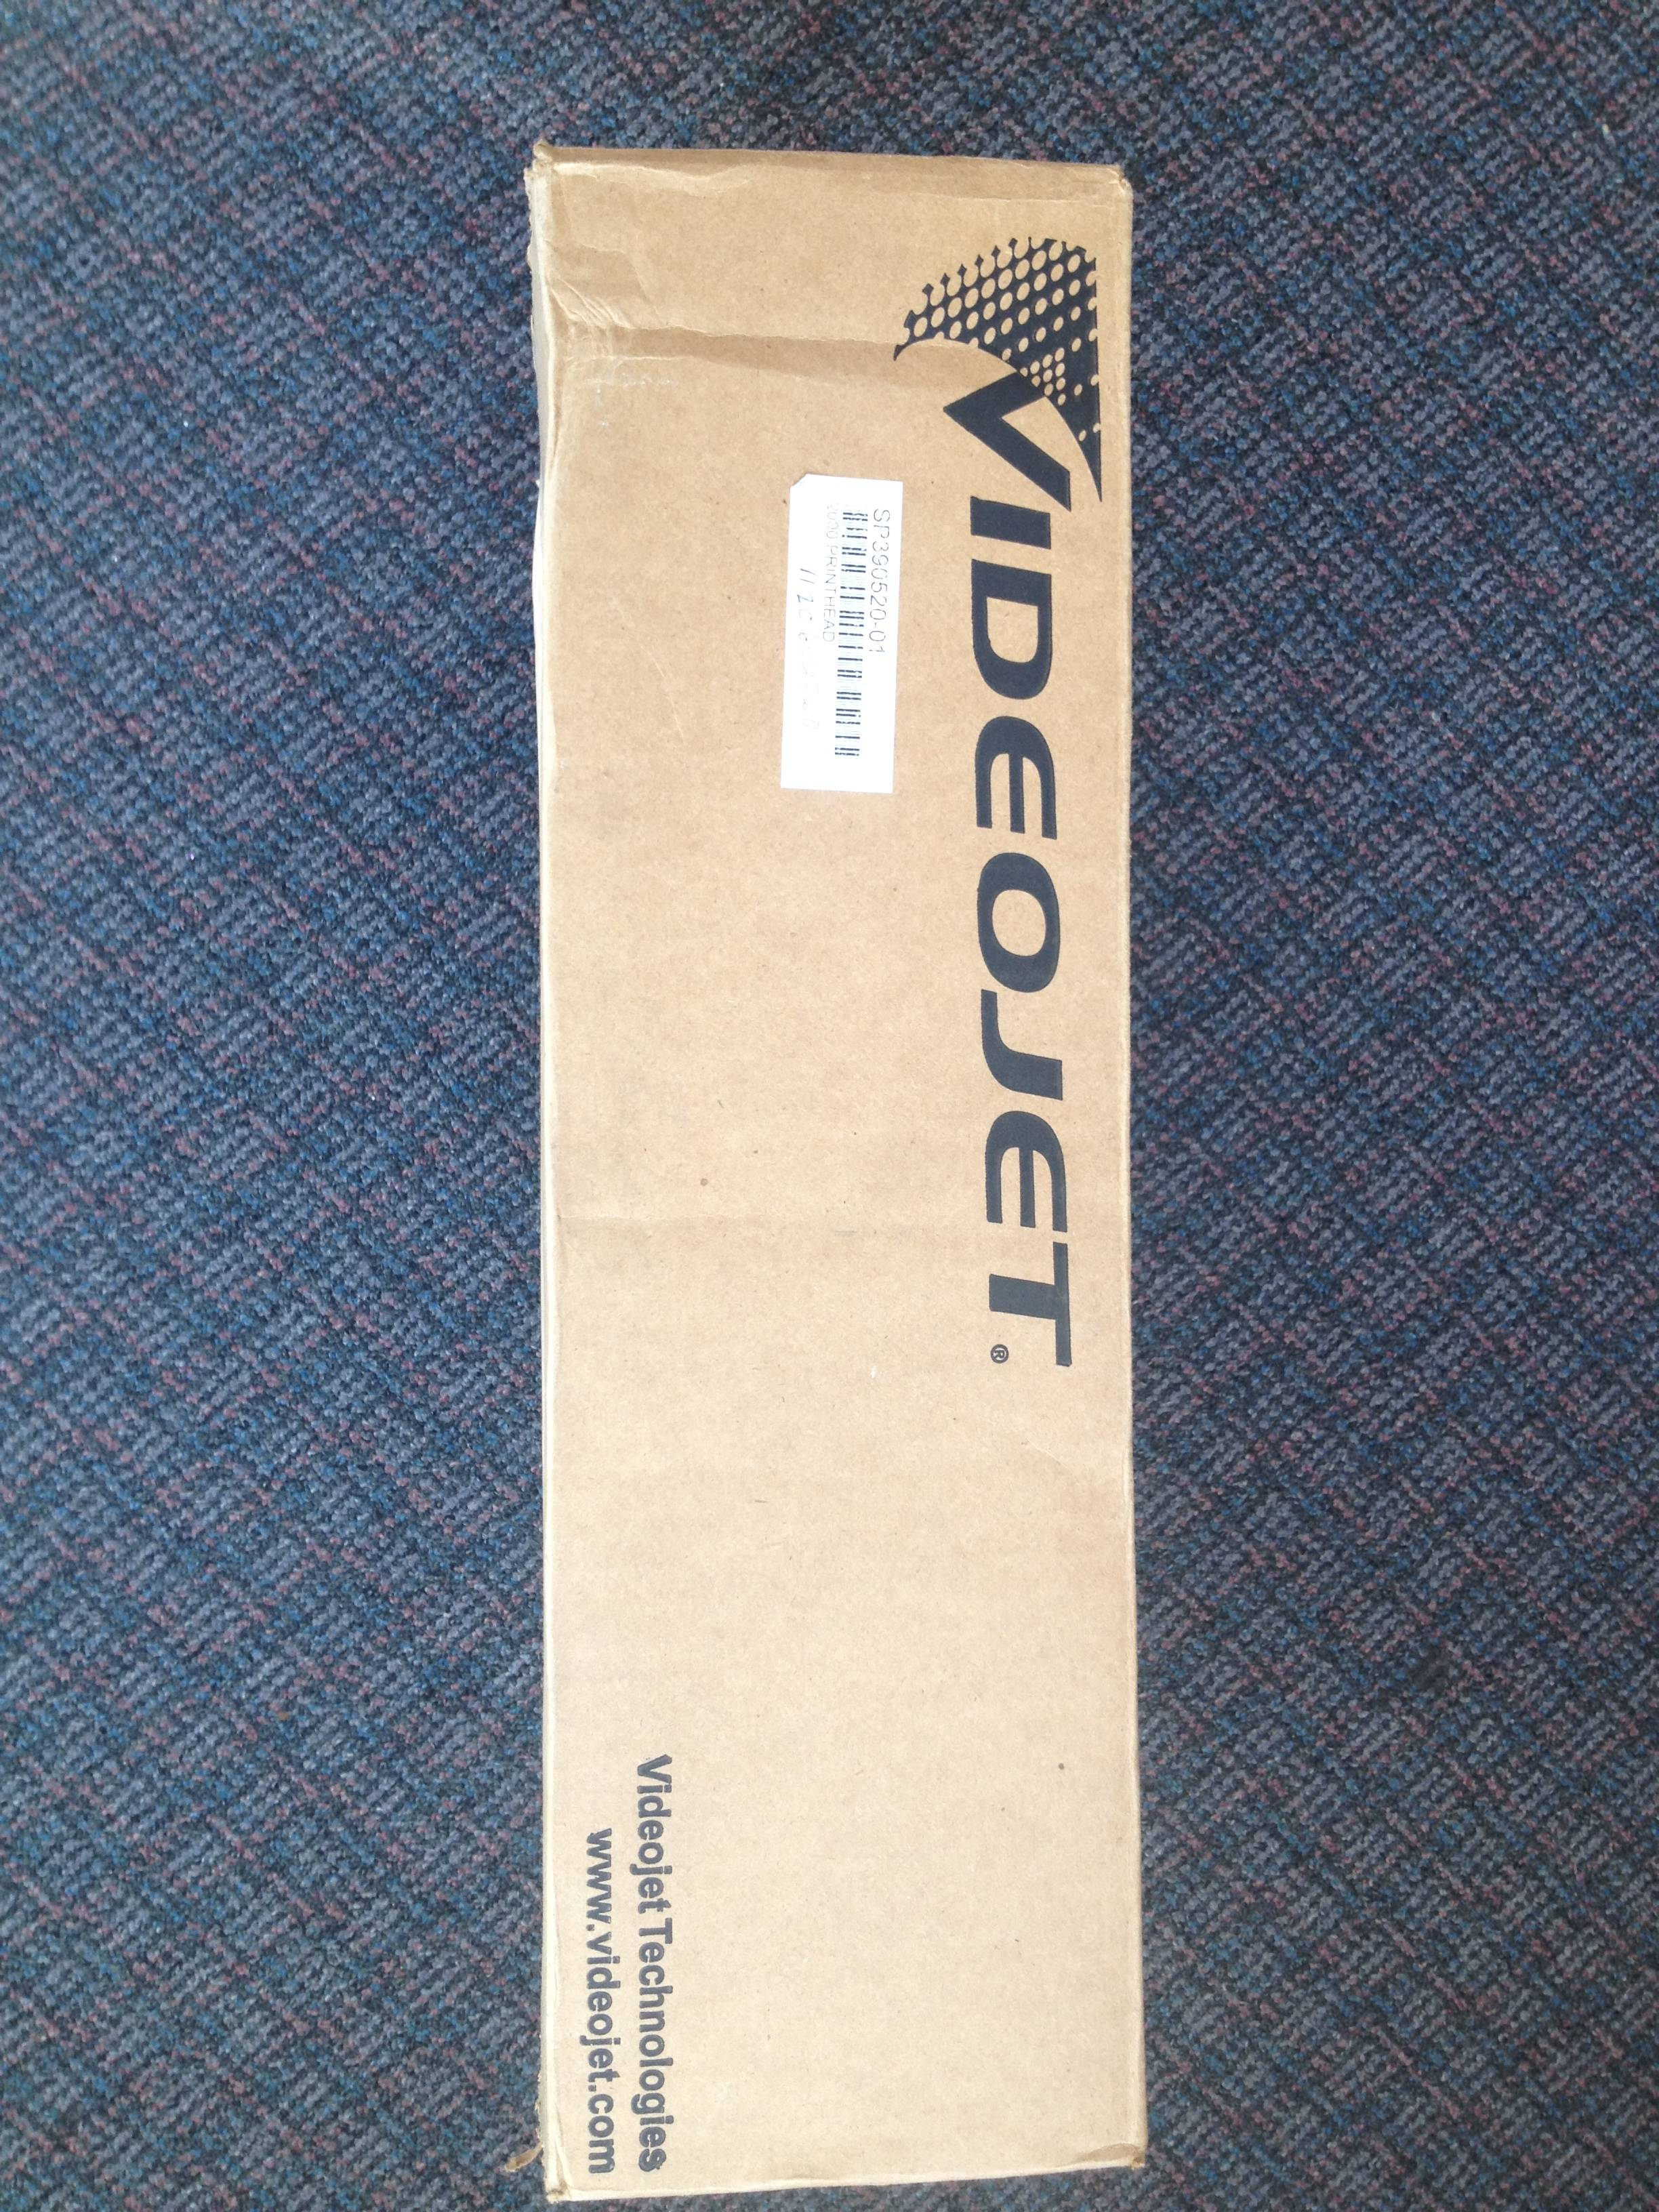 VideoJet SP390520-01 Printhead and Umbilical Assembly Still in Box